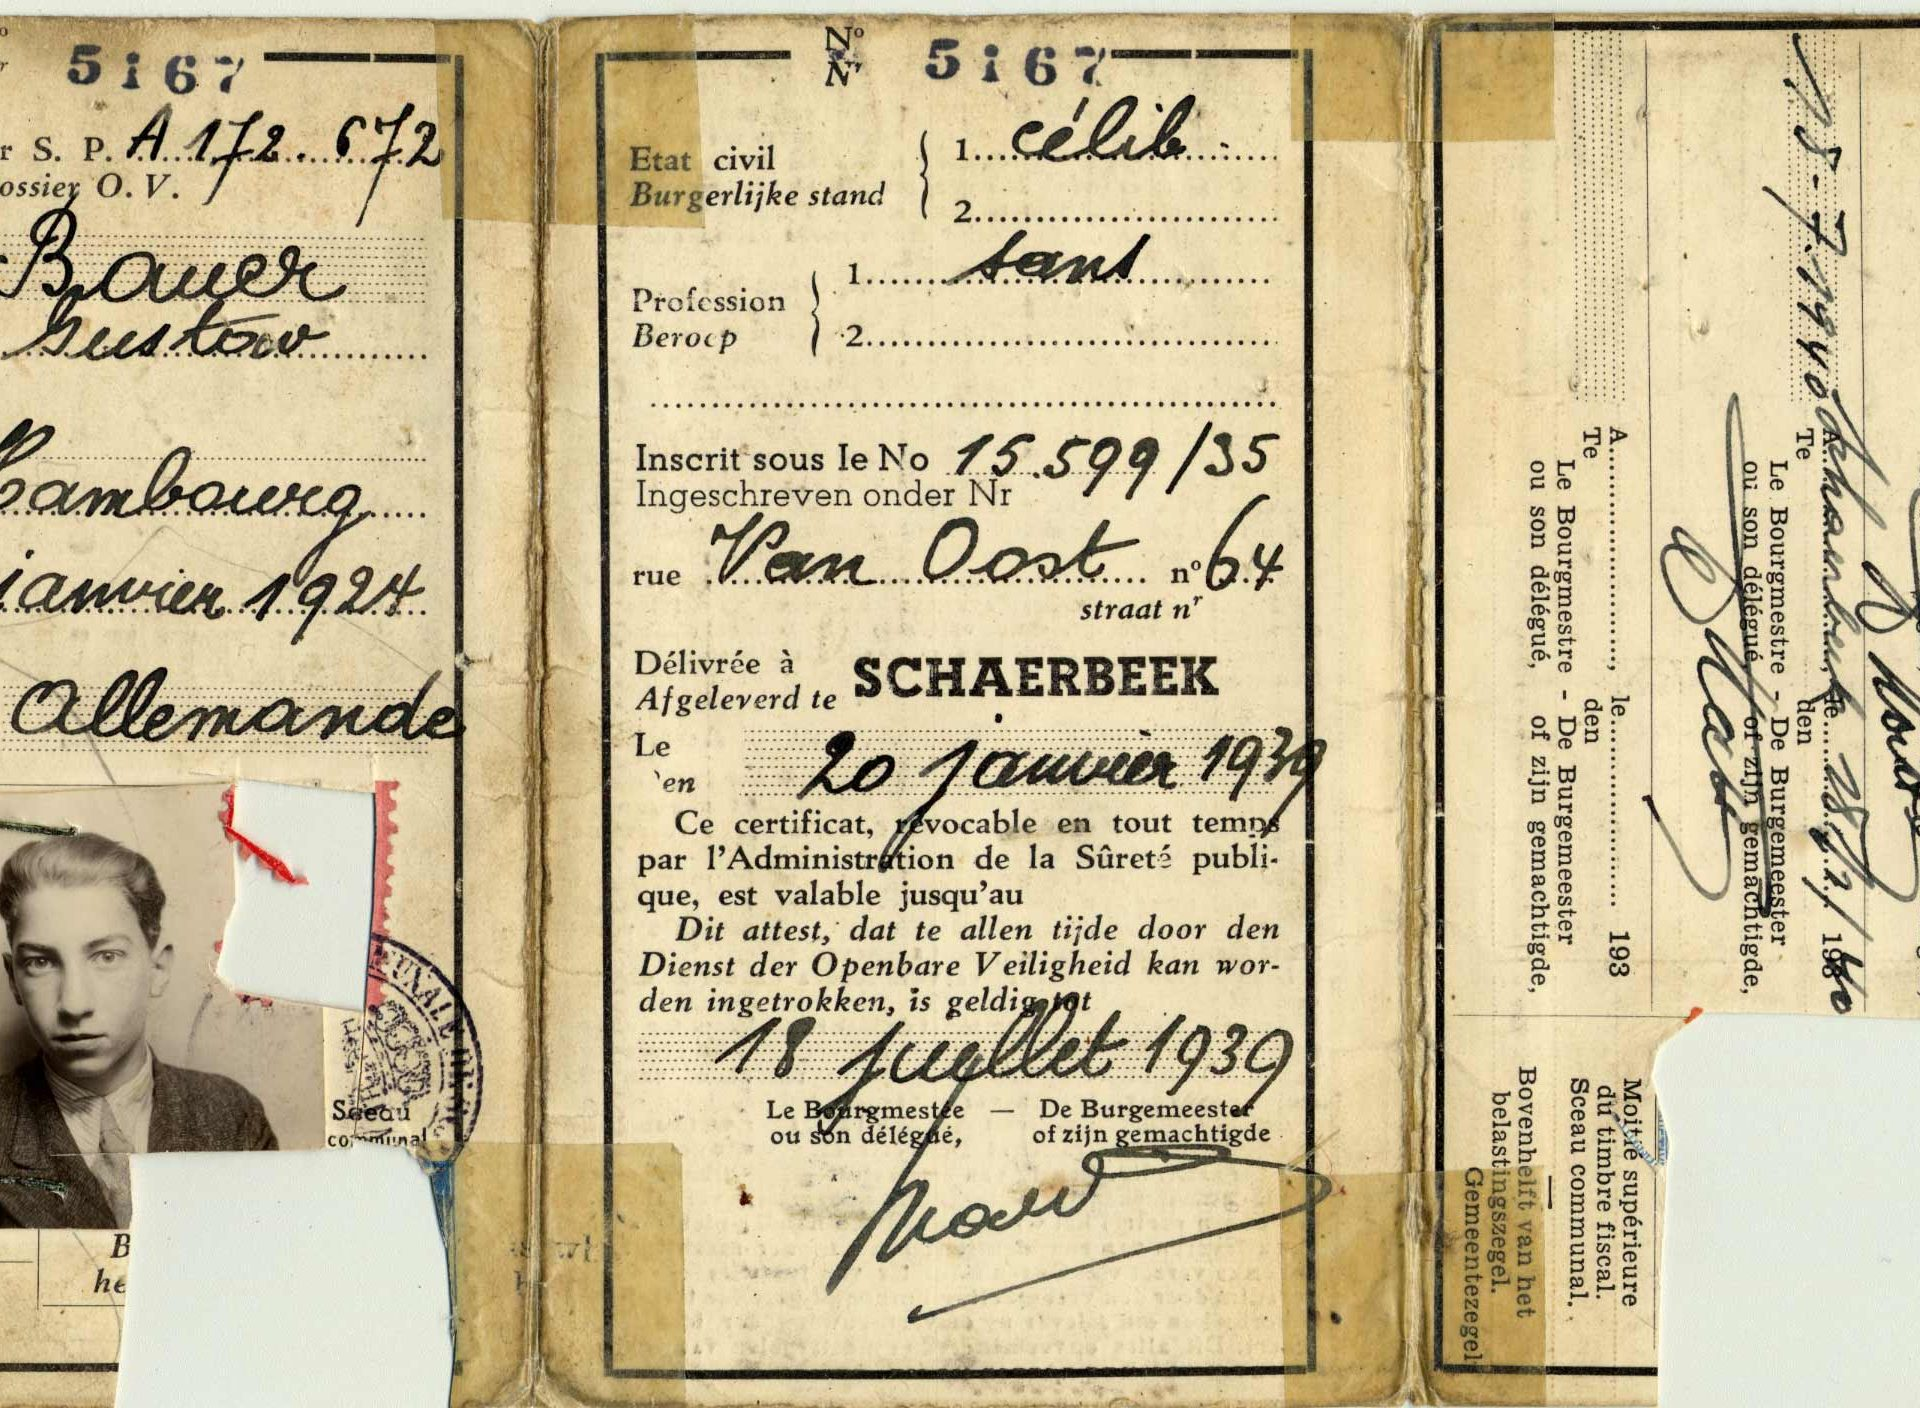 Gustave Bauer's identity card from Belgium in 1940.